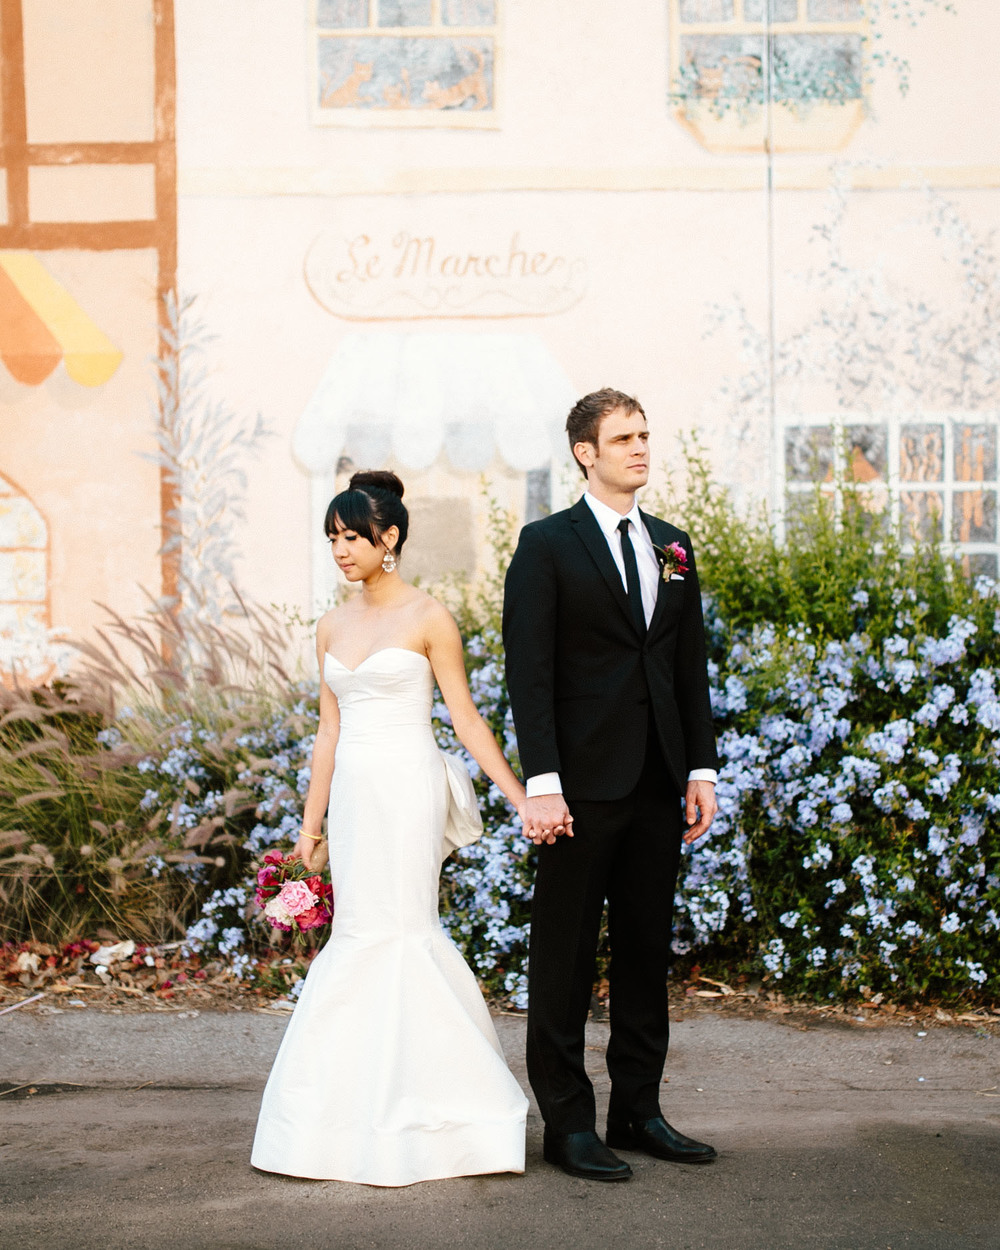 Los Angeles Wedding Photographer, The Elysian  - The Gathering Season x weareleoandkat 065.JPG